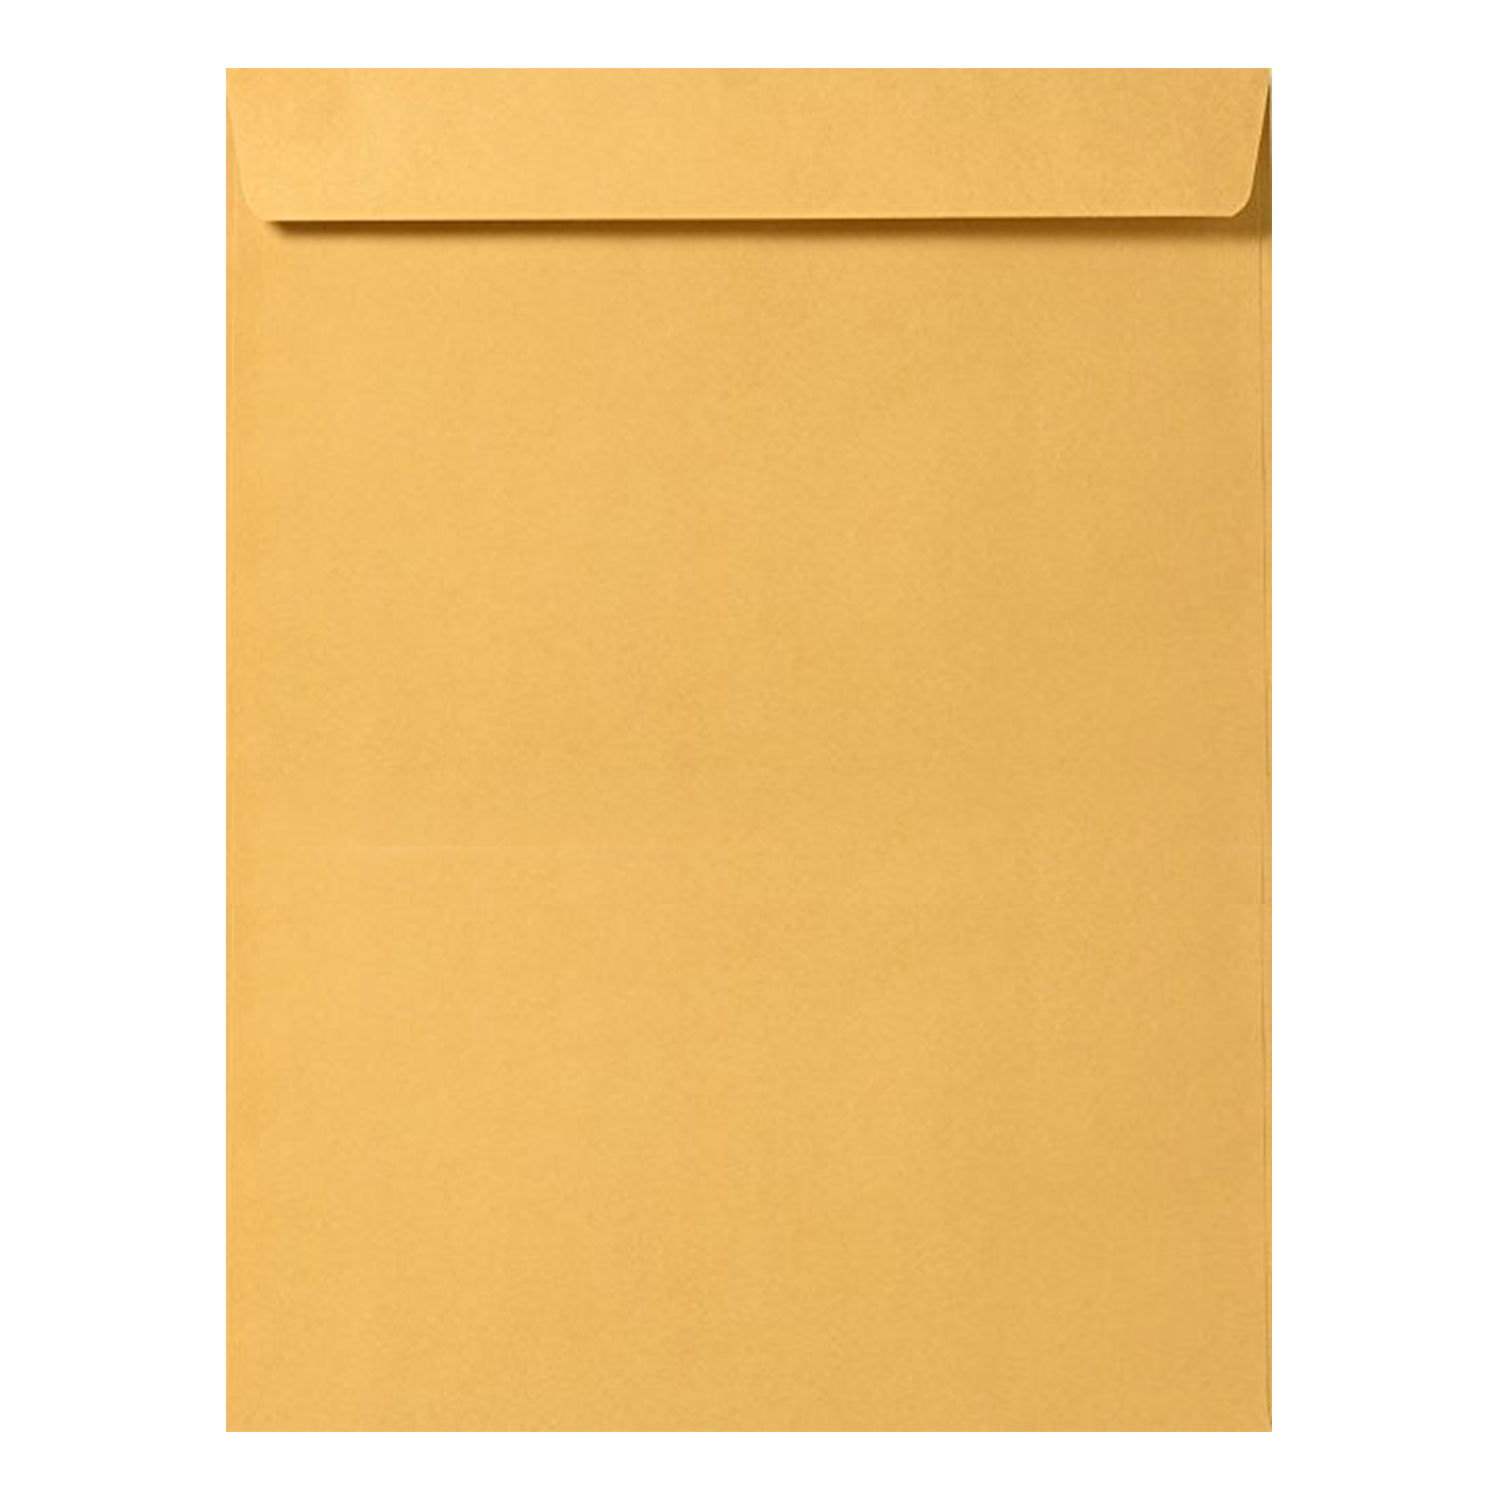 10 x 13 Catalog Envelope